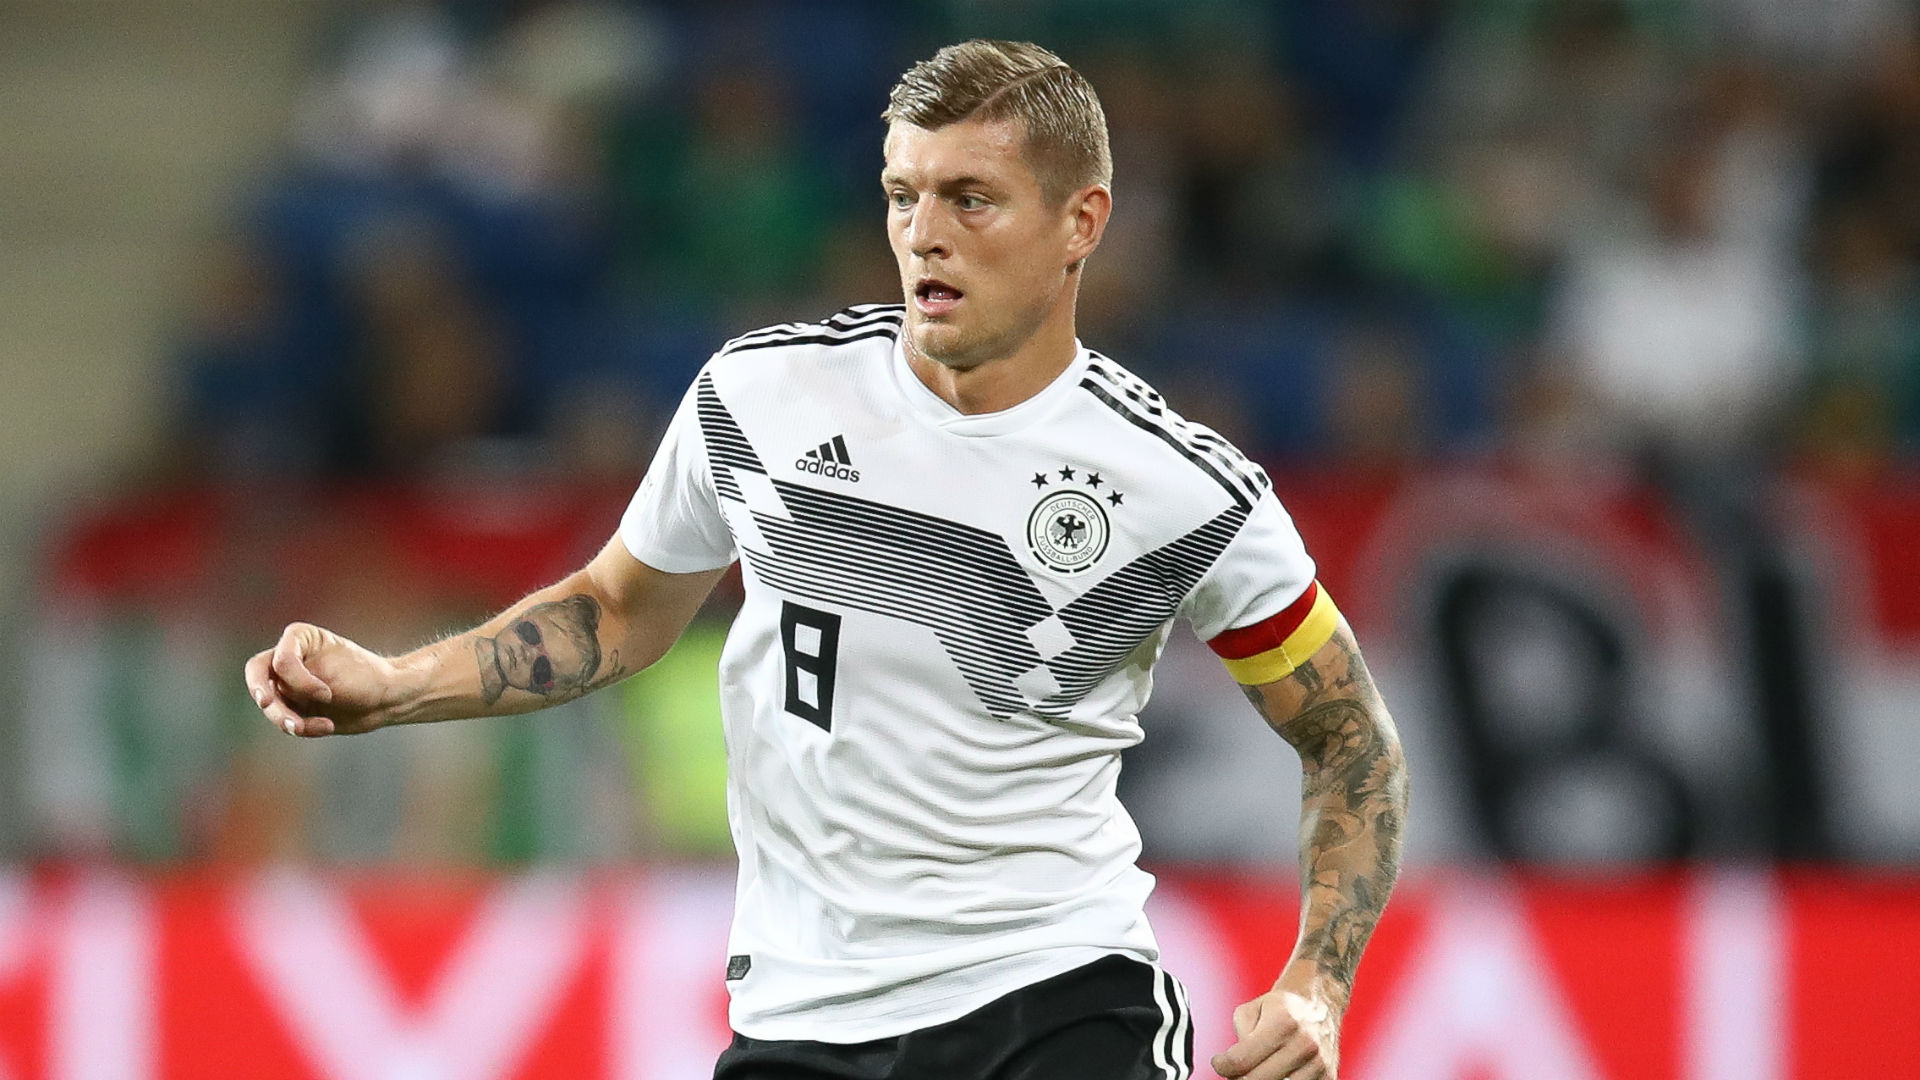 Nations League: Five reasons why Germany are struggling so badly